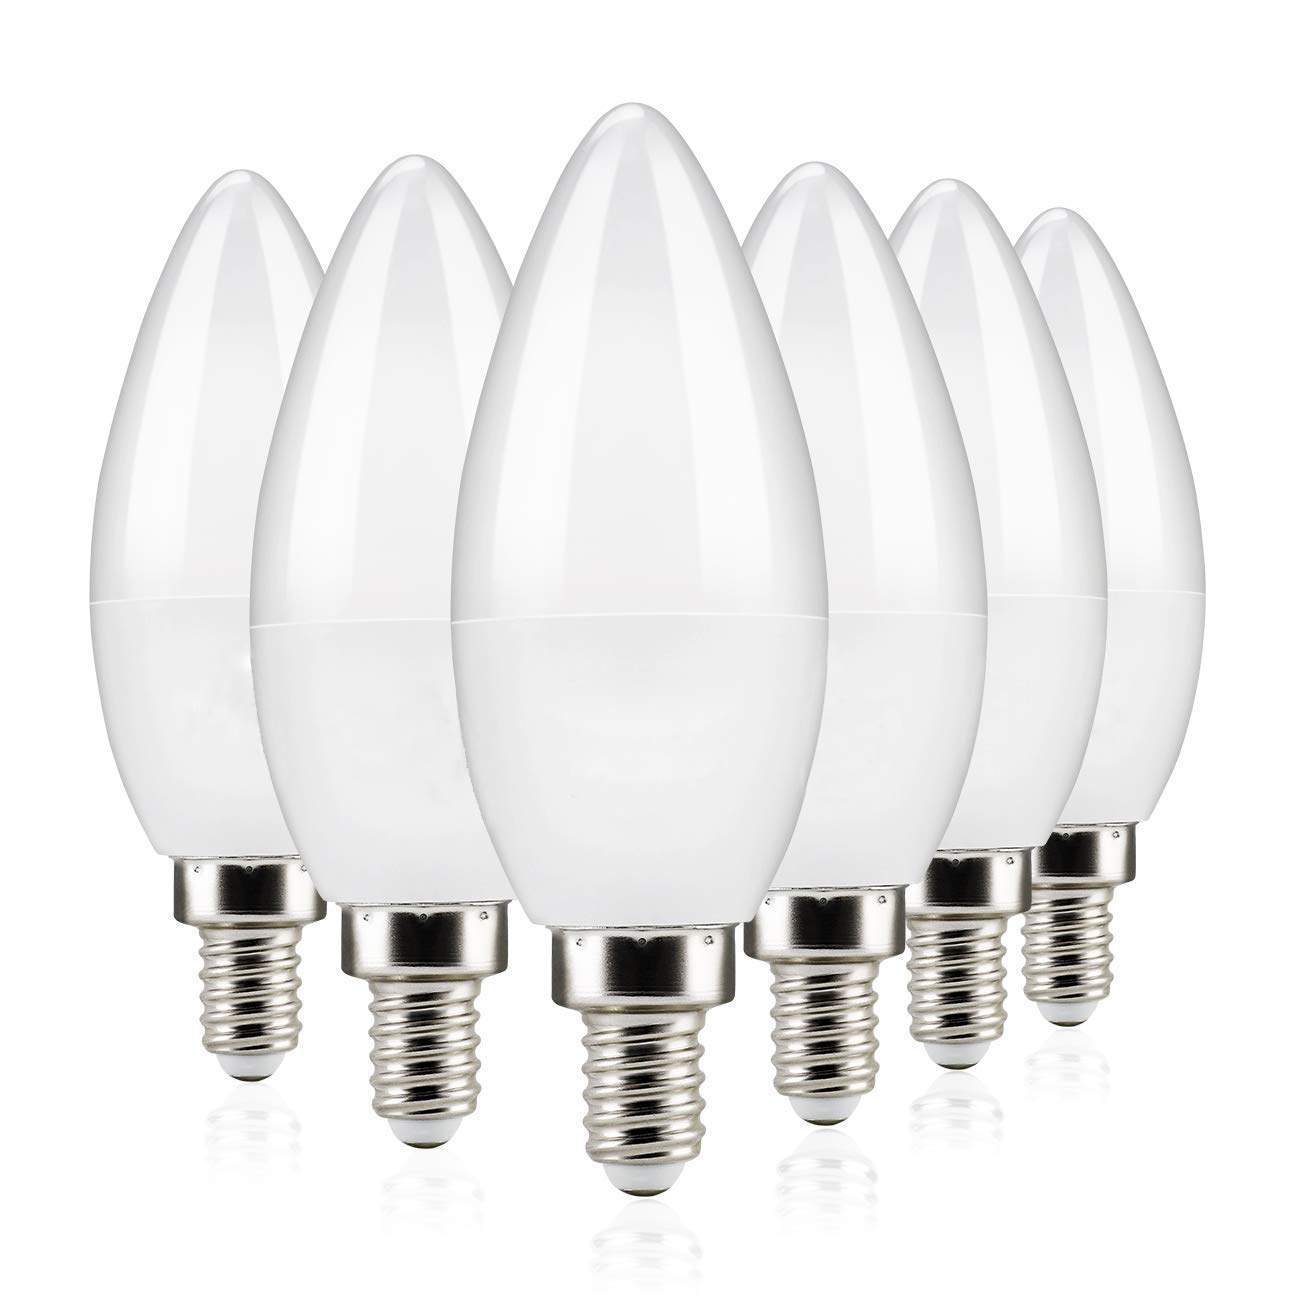 High Brightness E14 Led Candle Bulb 110V 220V Save Energy Spotlight Warm/cool White Chandlier Crystal Lamp Bombillas Home Light